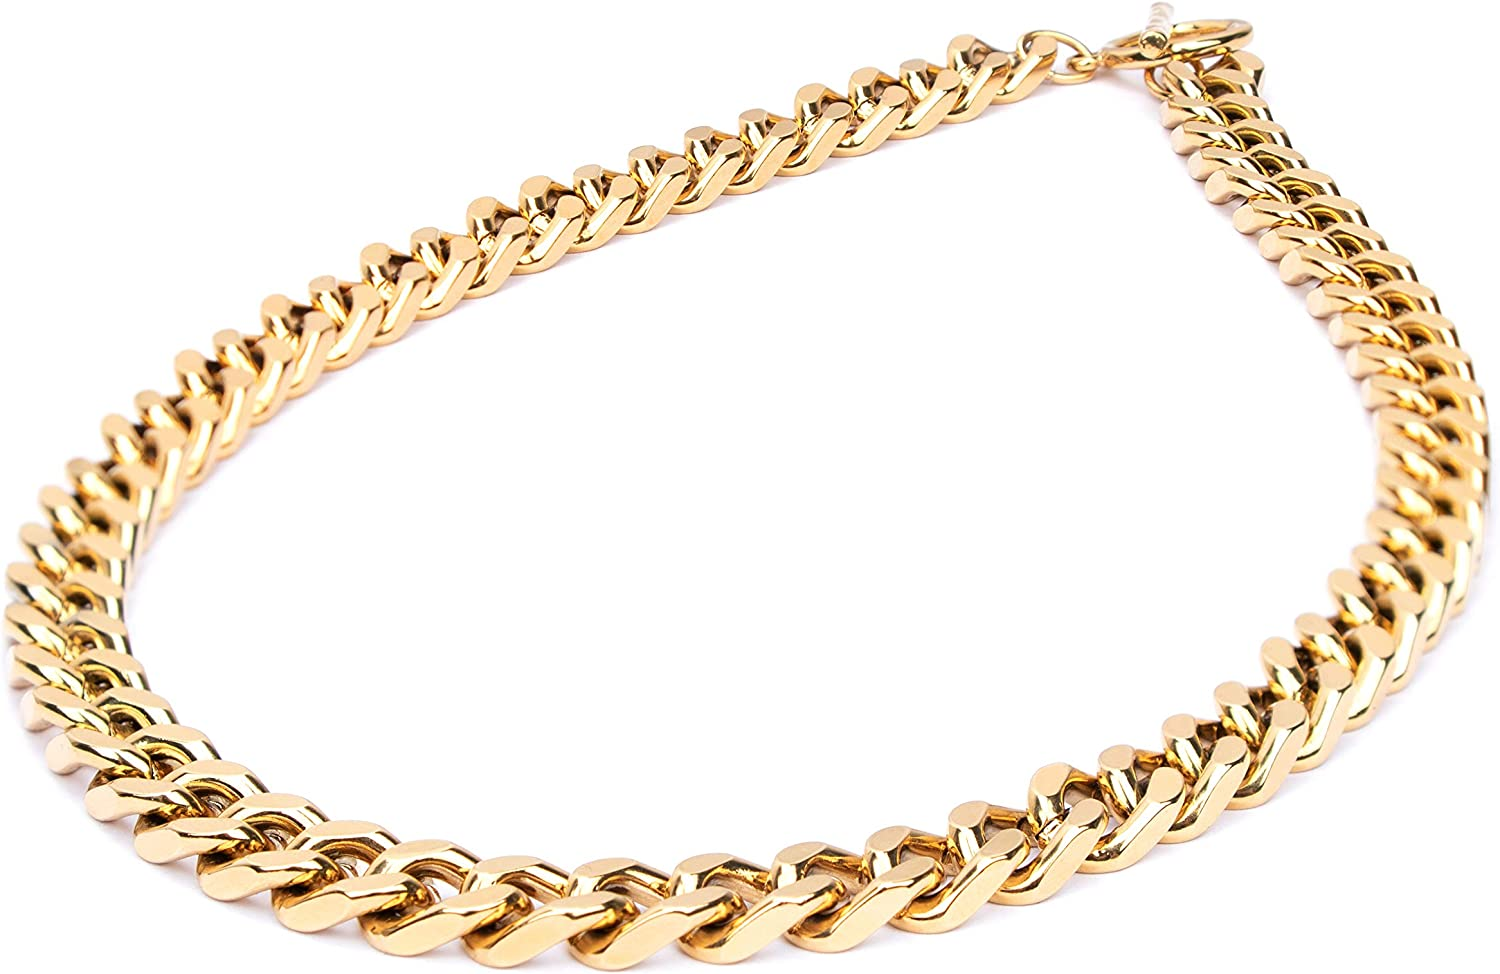 18K Gold Plated Dainty Paperclip Link Chunky Chain Necklace Stainless Steel Oval Rectangle Chain Link Choker for Women Girls